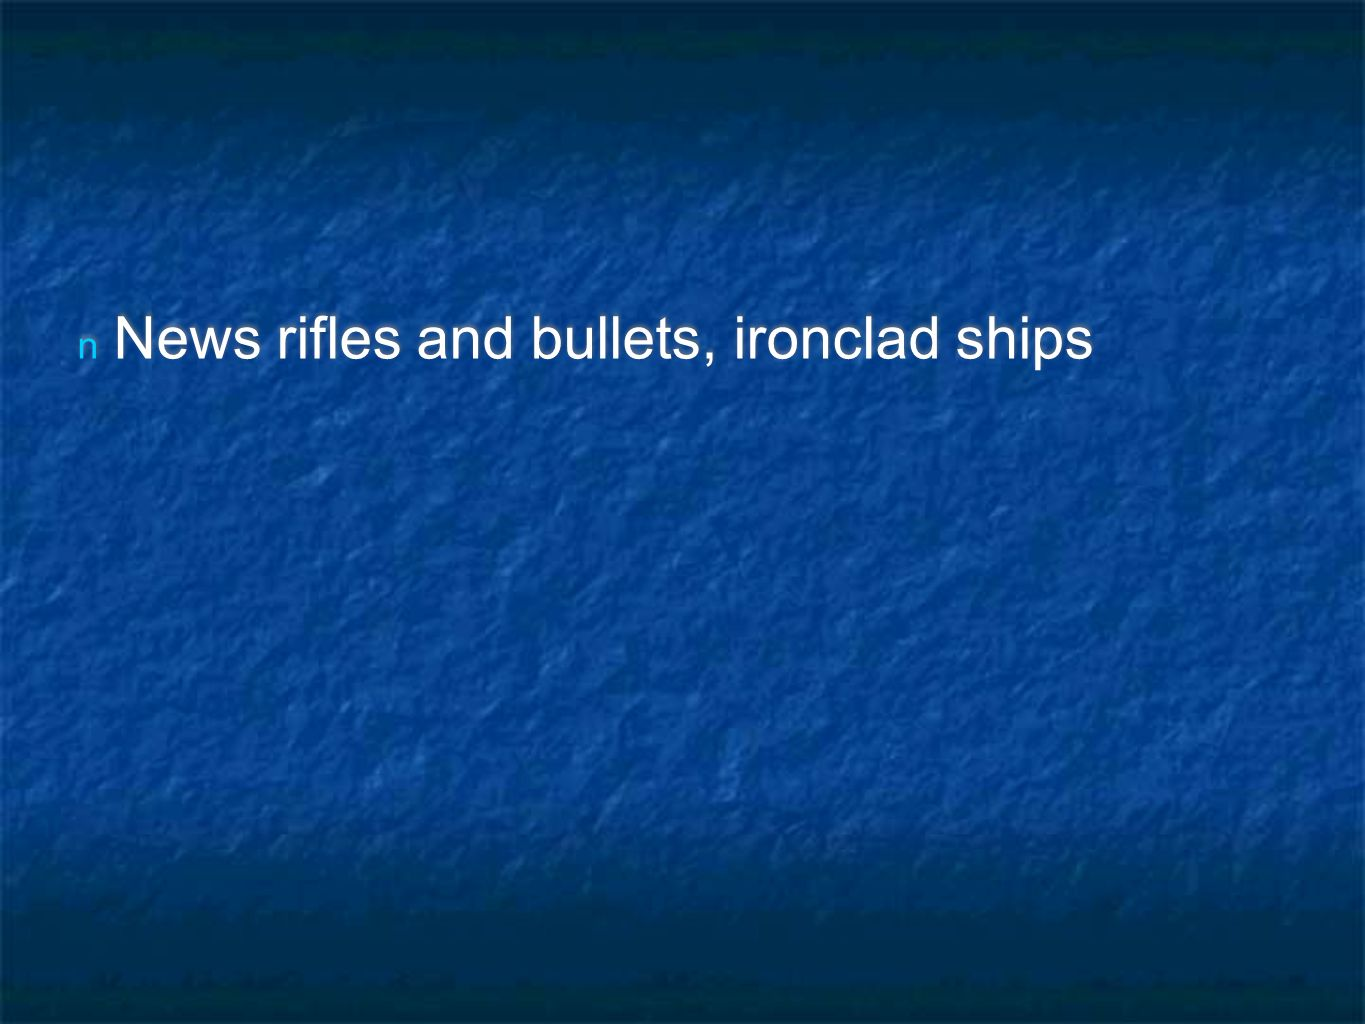 n News rifles and bullets, ironclad ships